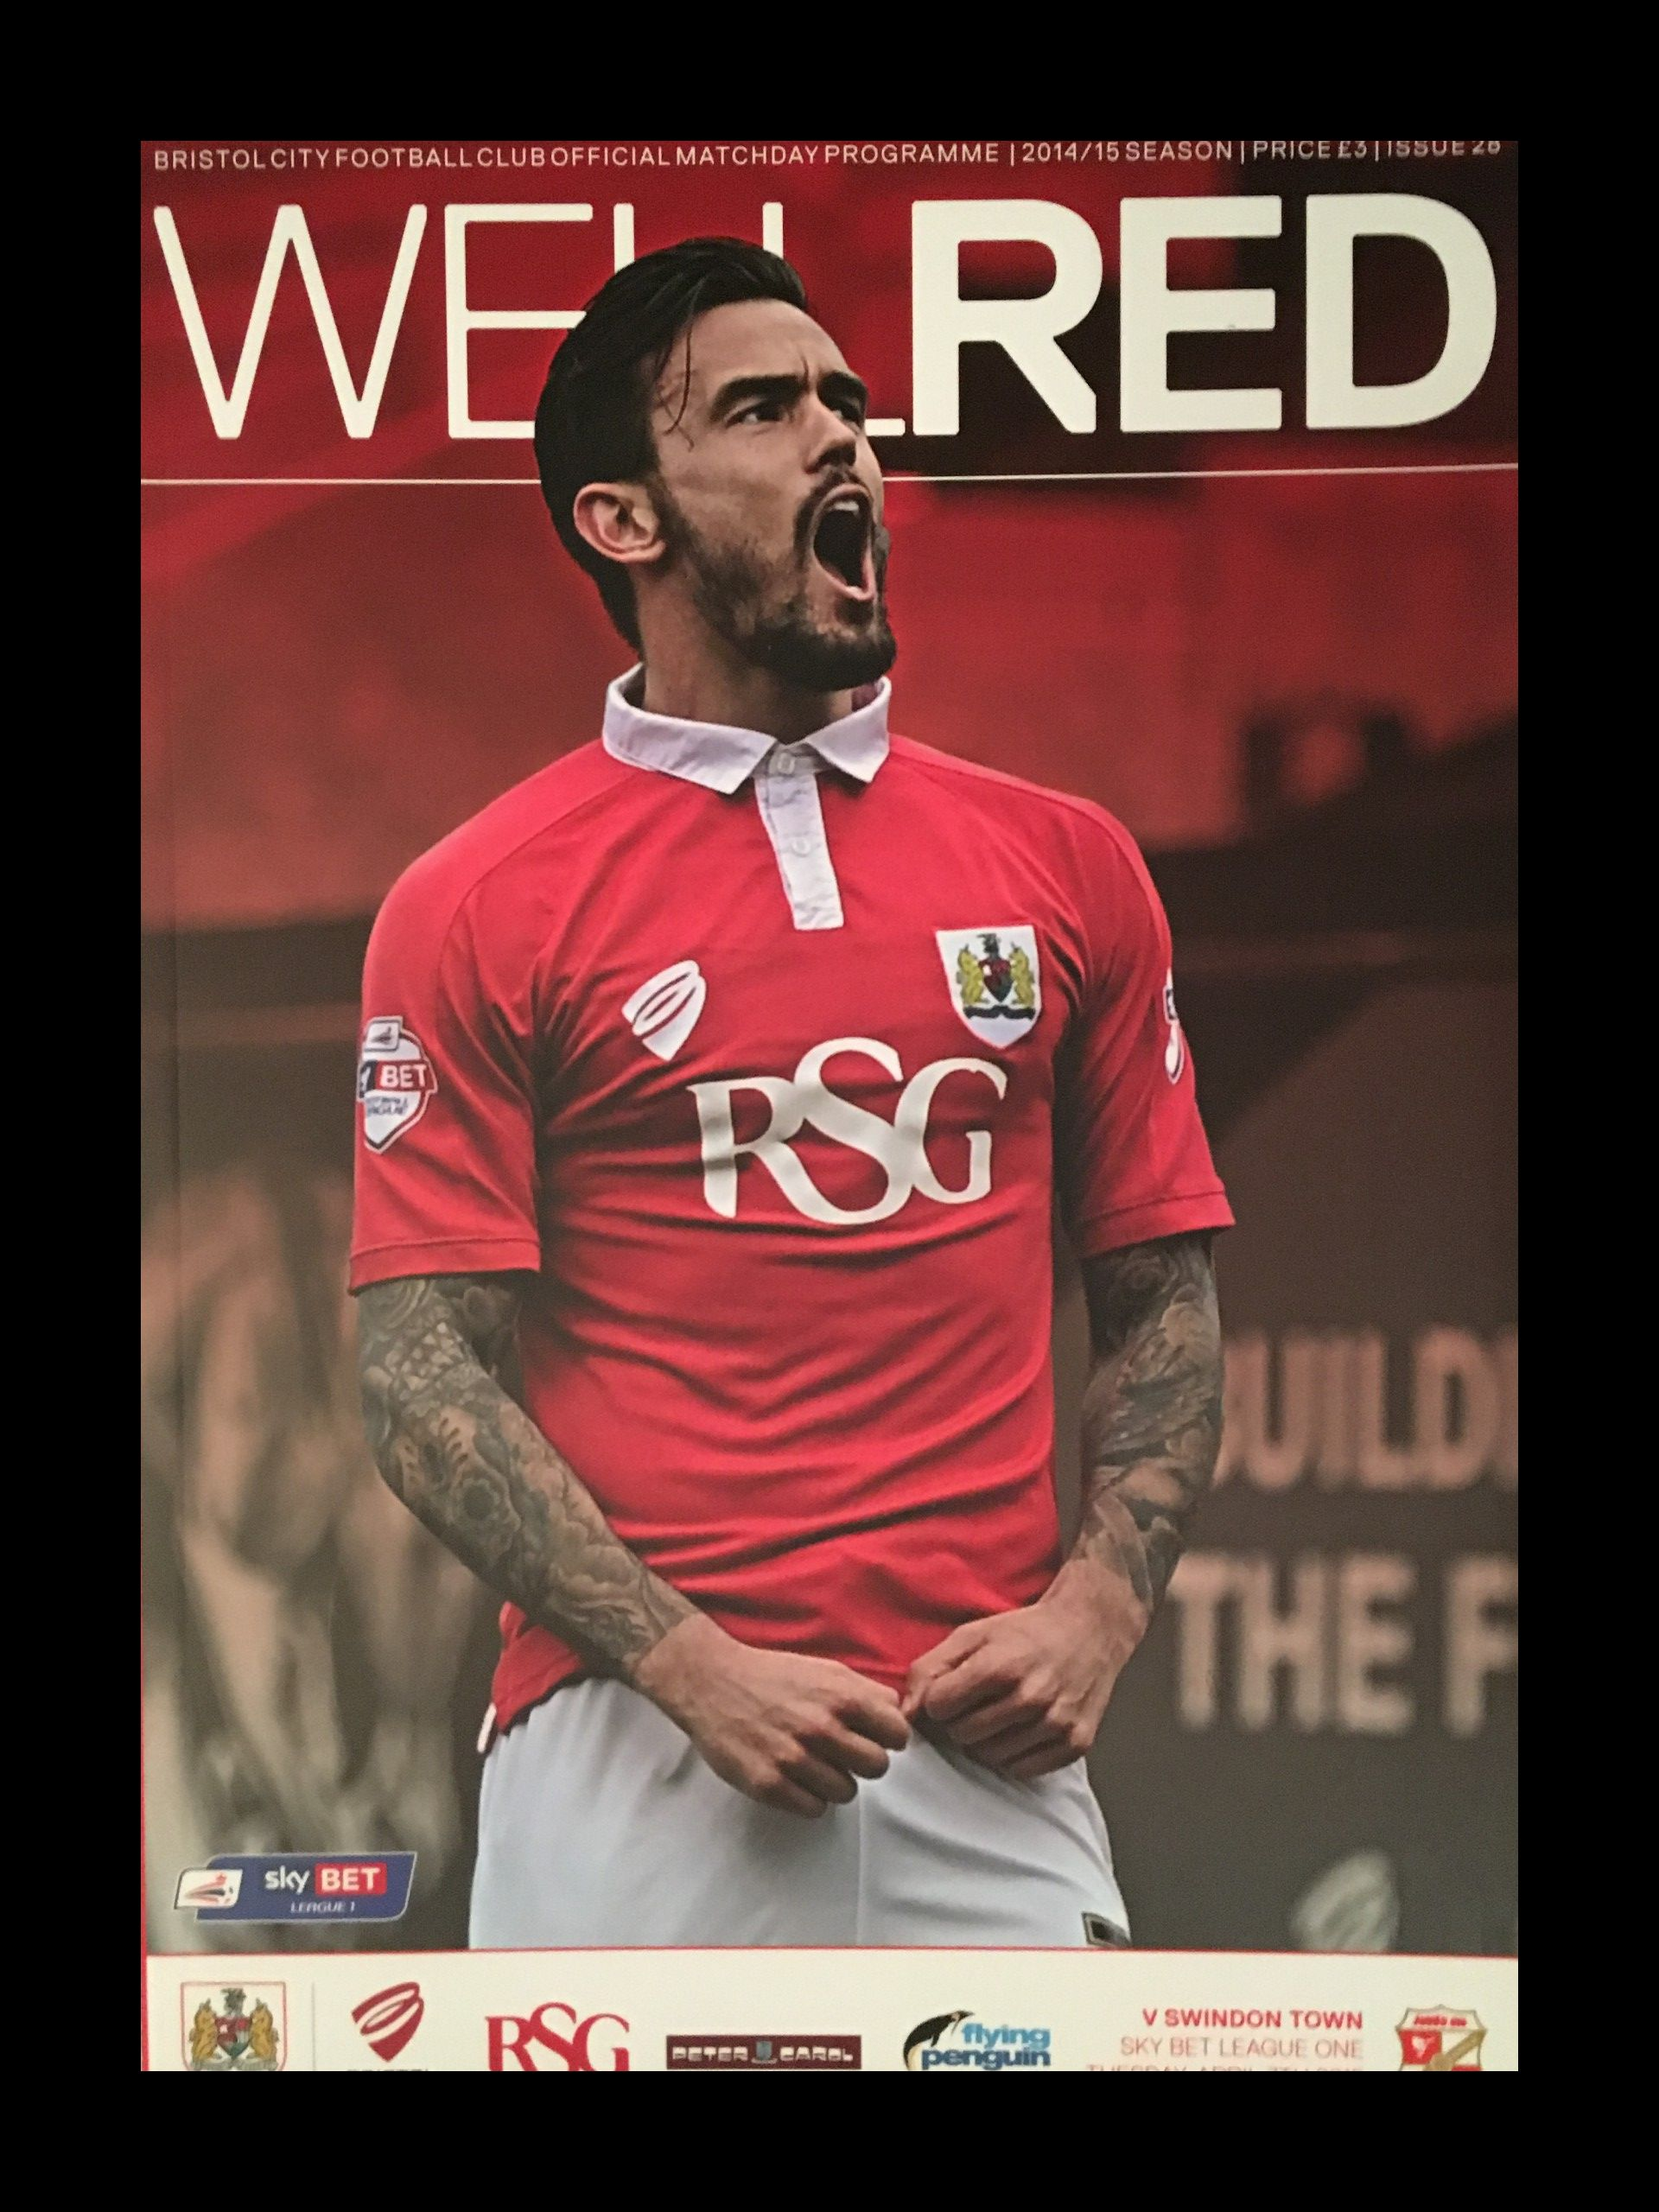 Bristol City v Swindon Town 07-04-2015 Programme